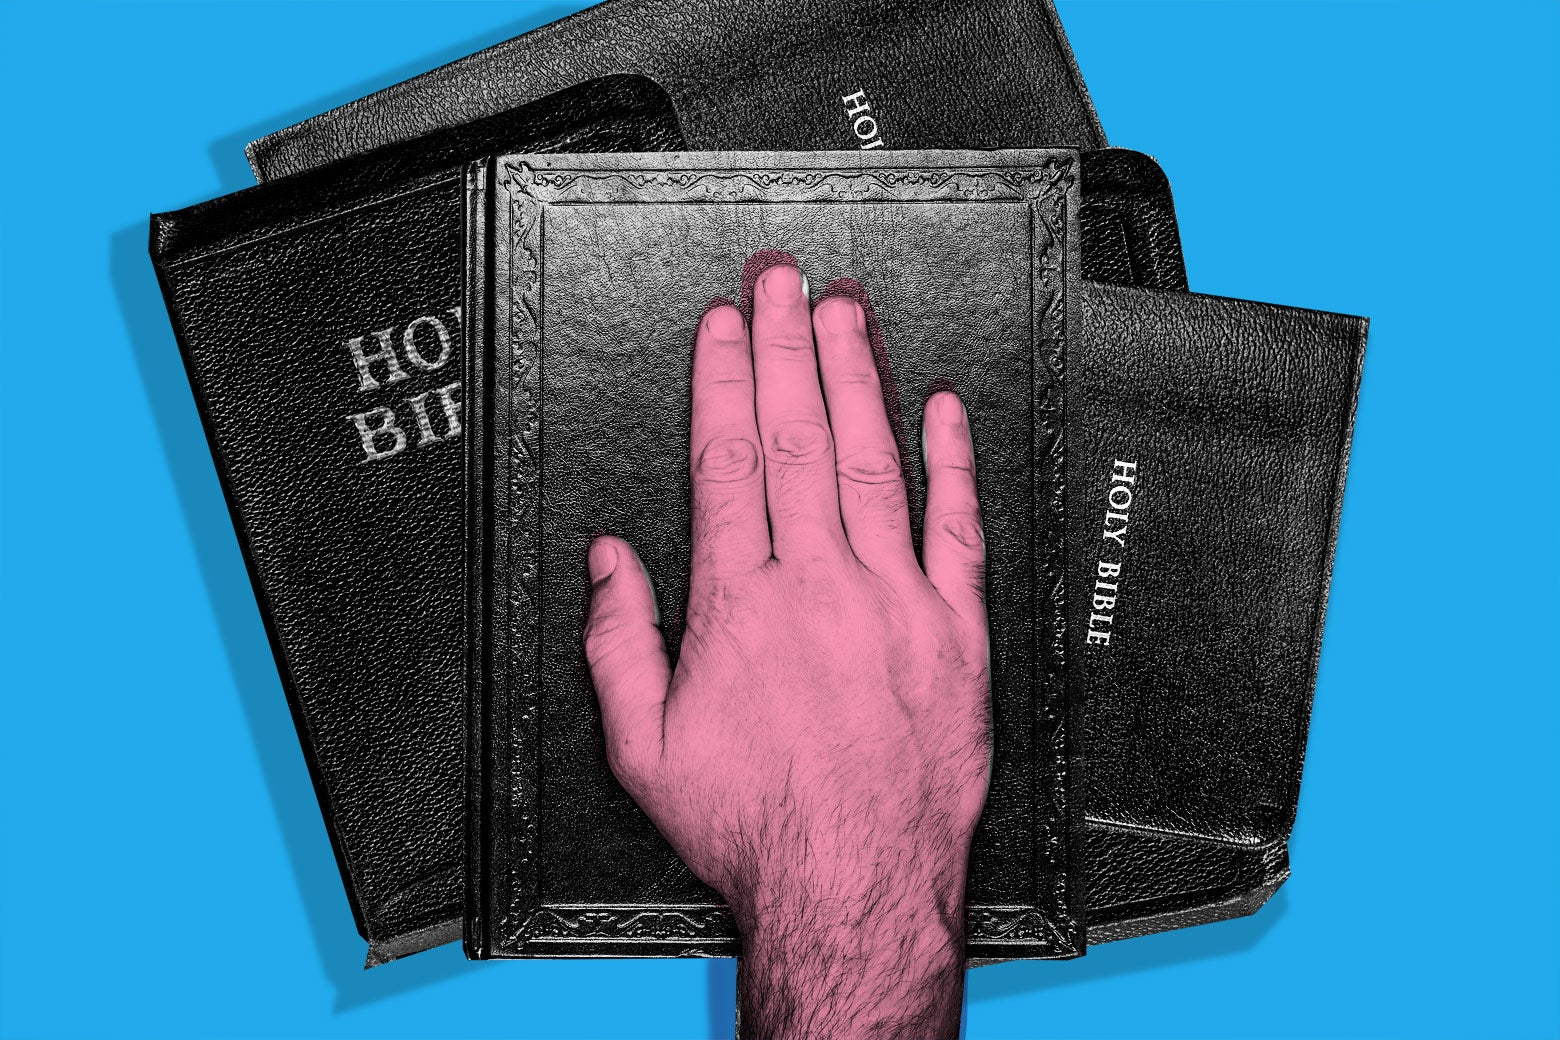 Photo illustration of a hand over a stack of Bibles.